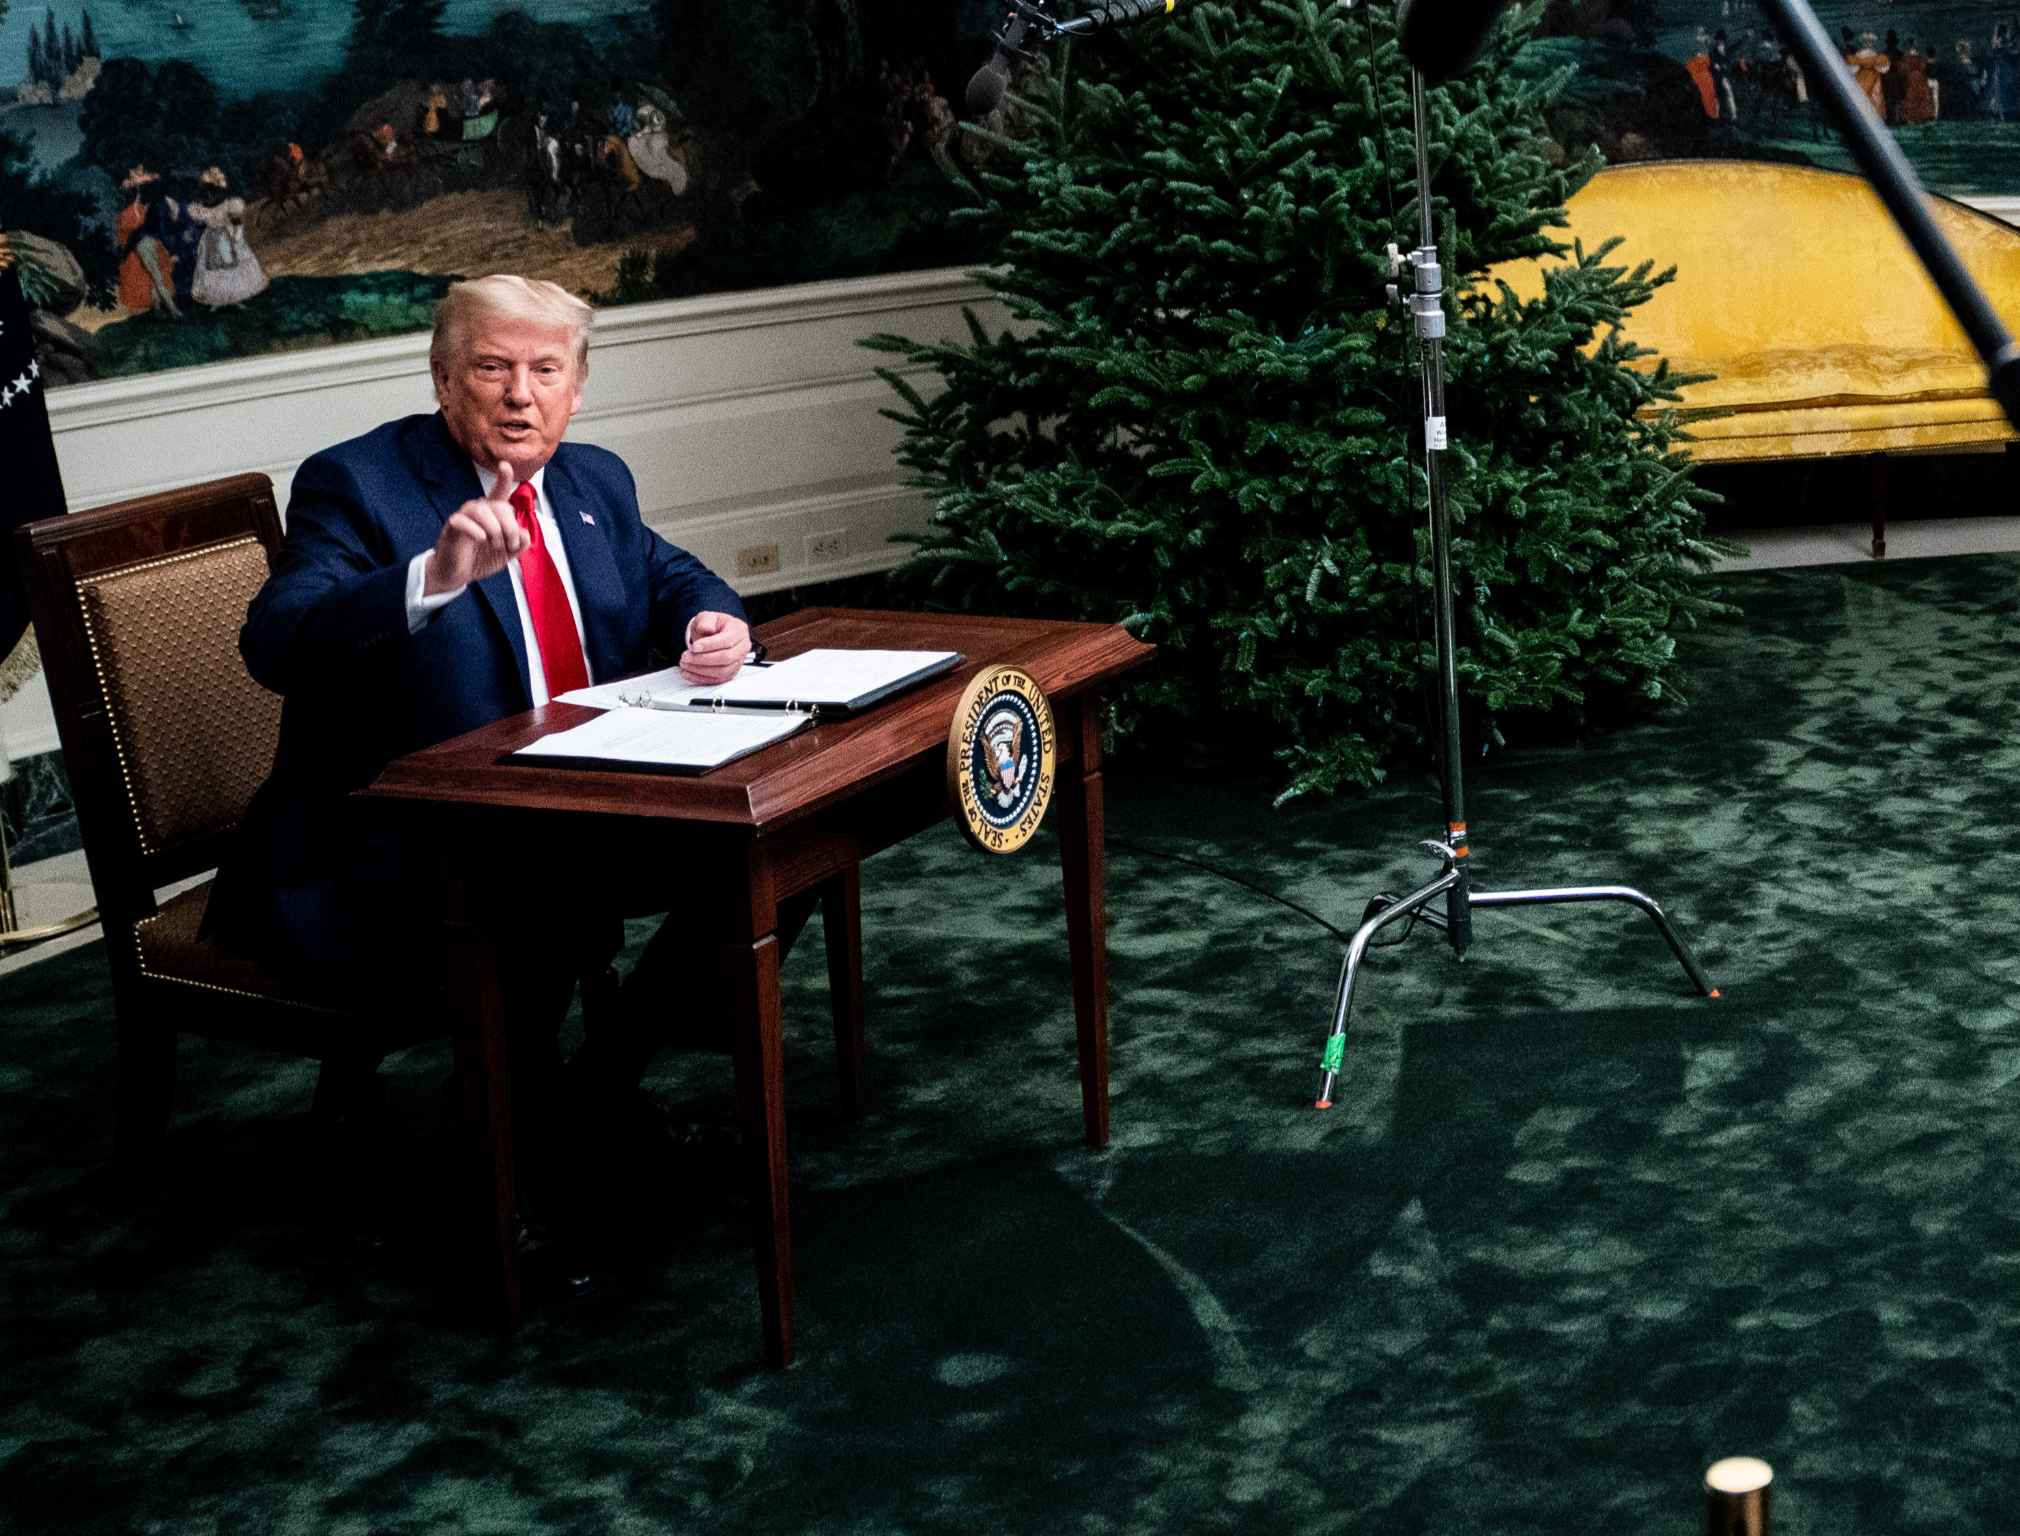 Trump's 'tiny desk' turned into children's toys in latest meme